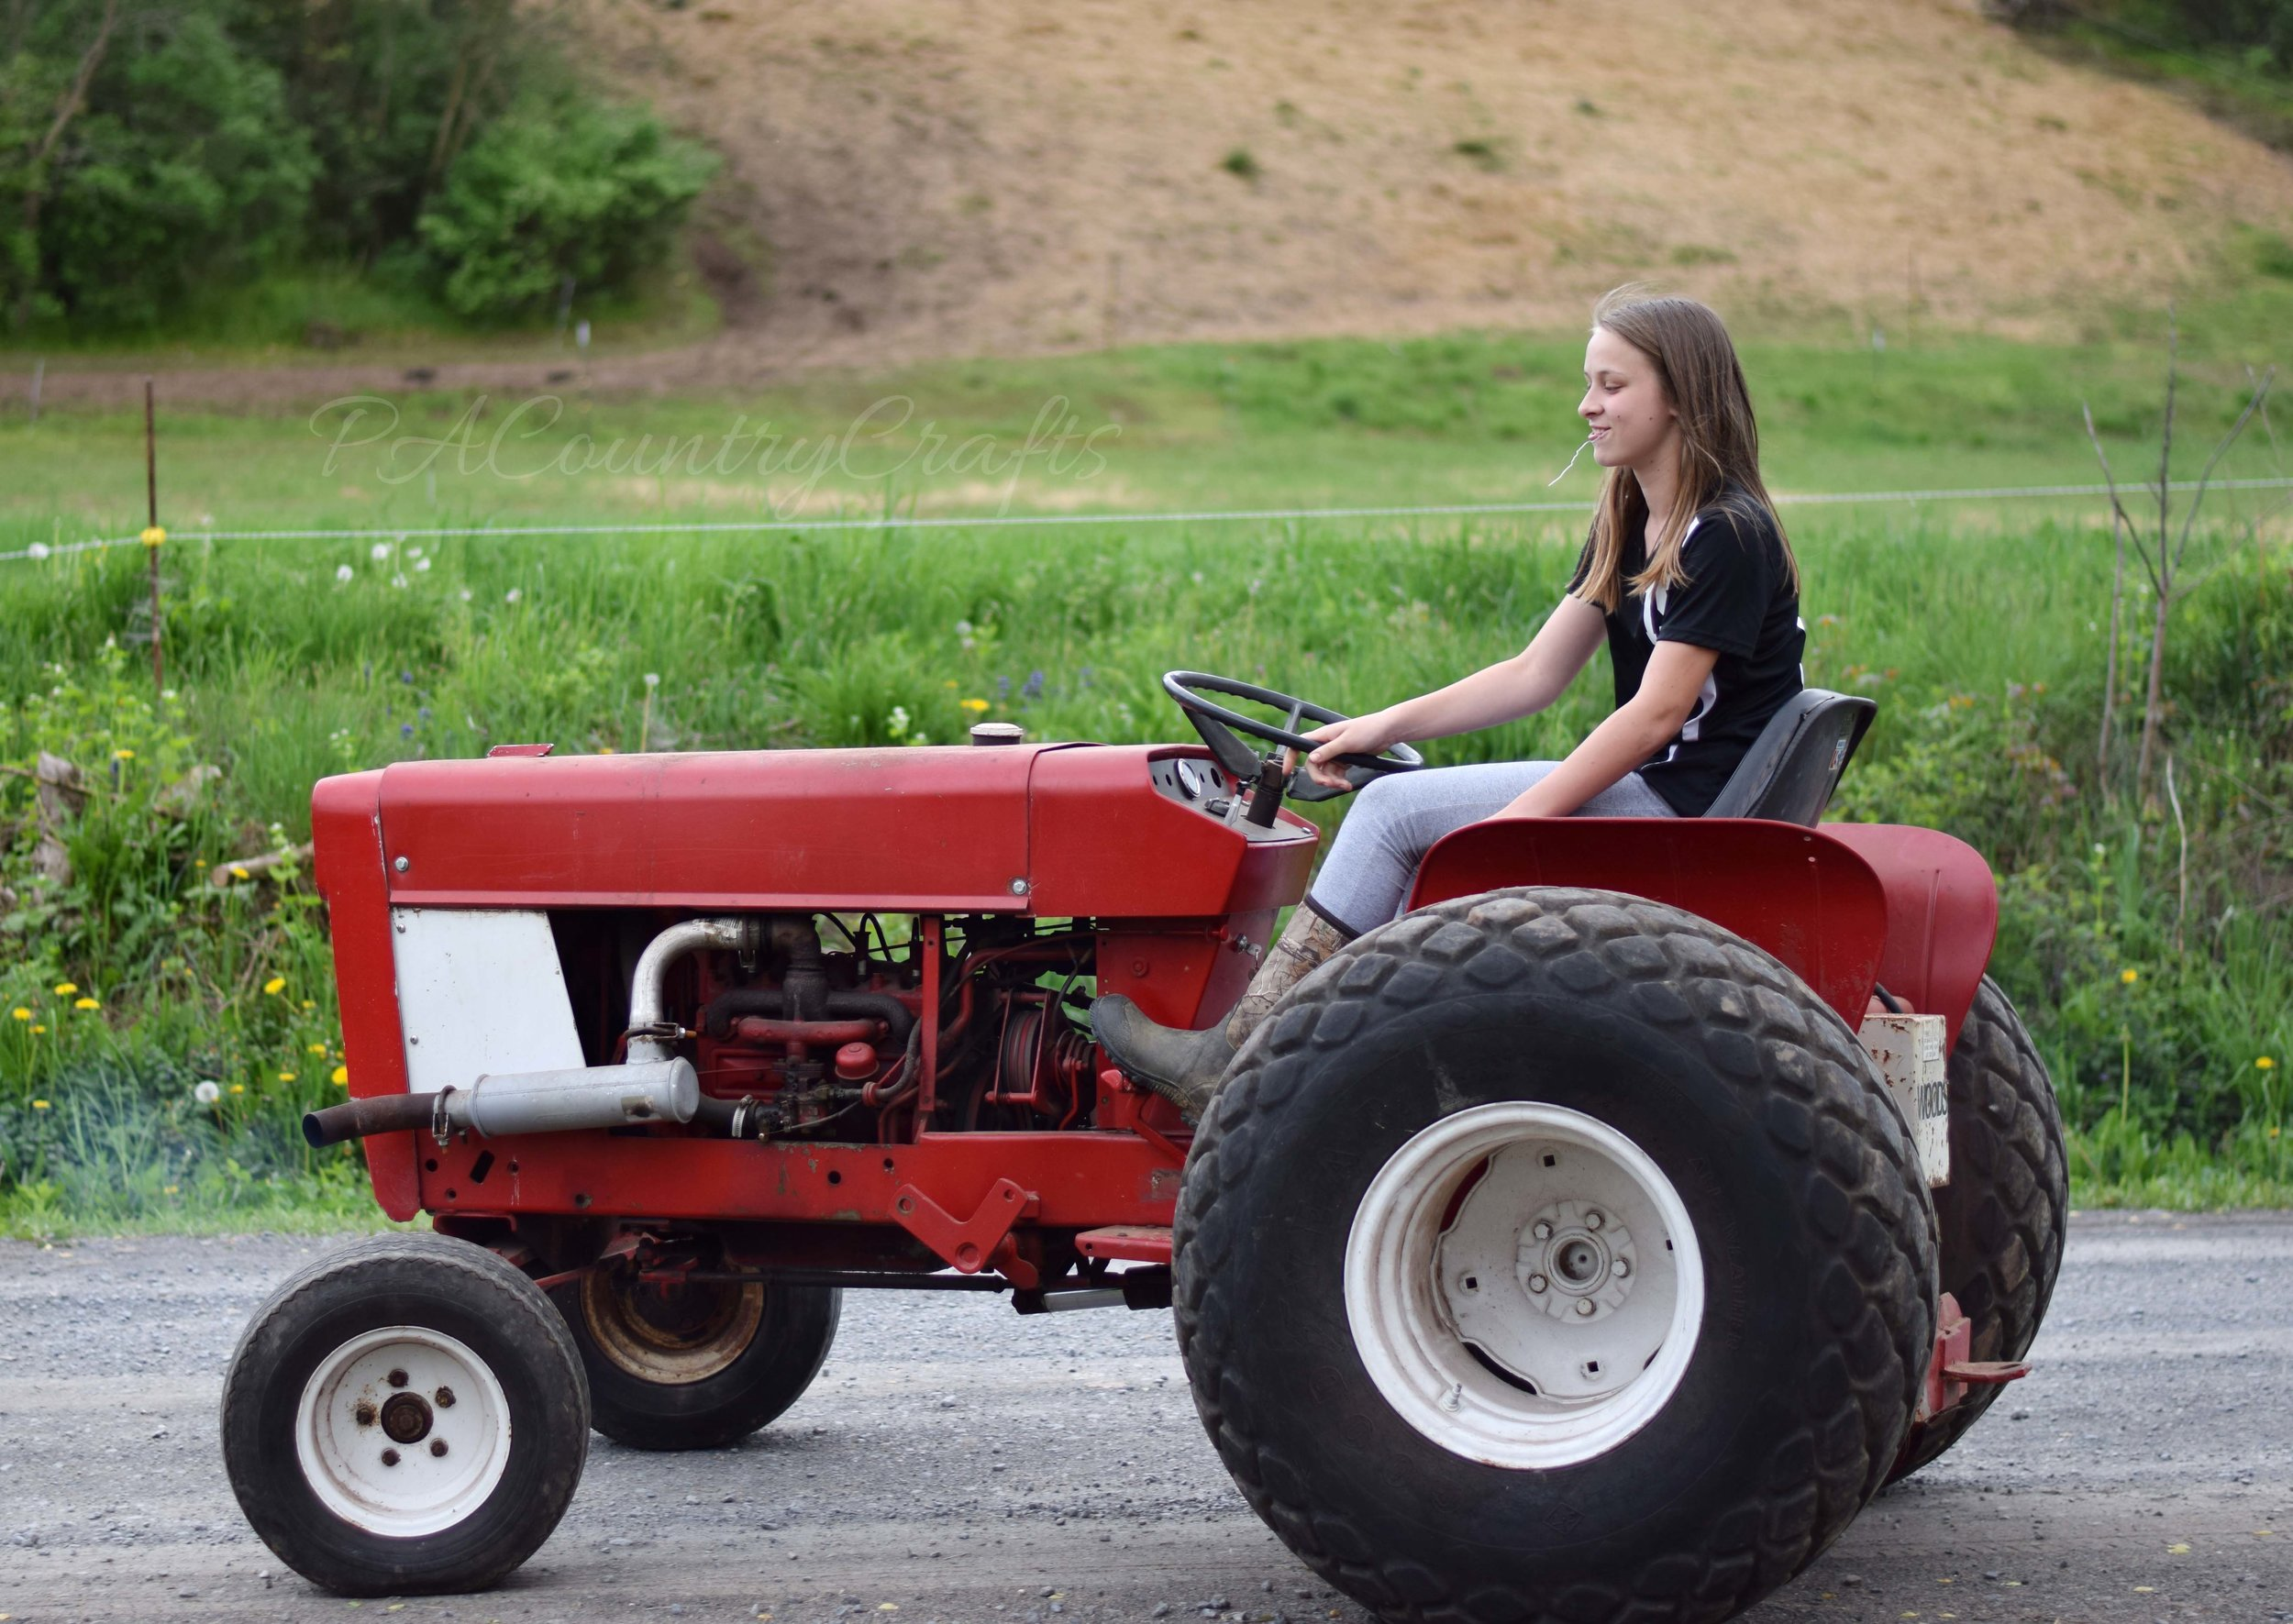 halley-on-the-tractor-wm